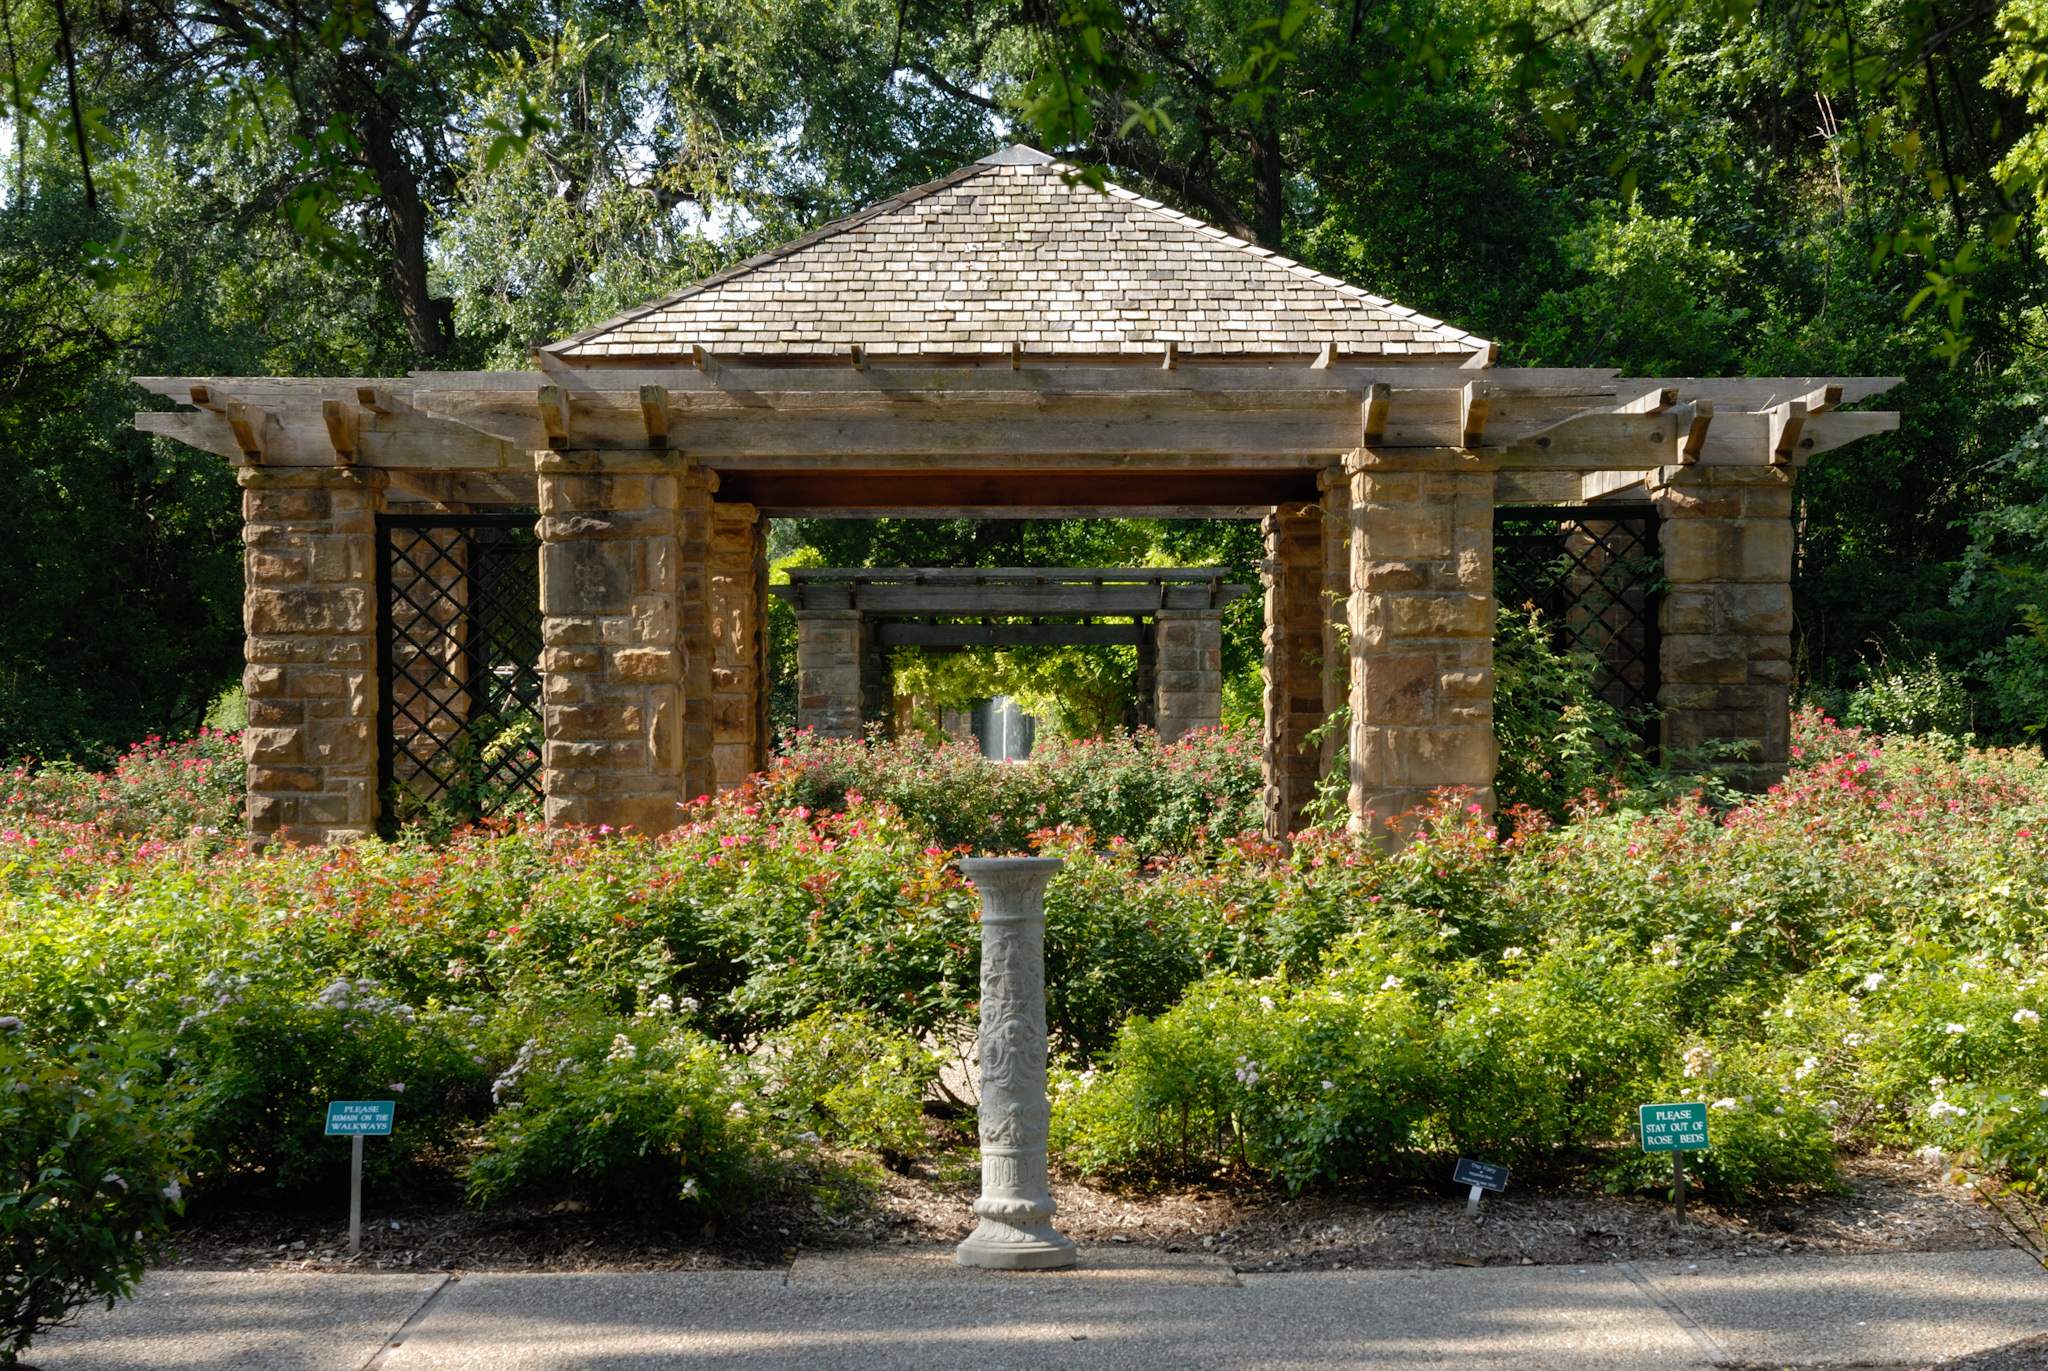 File:0011Fort Worth Botanic Garden Oval Rose Pavillion N Texas